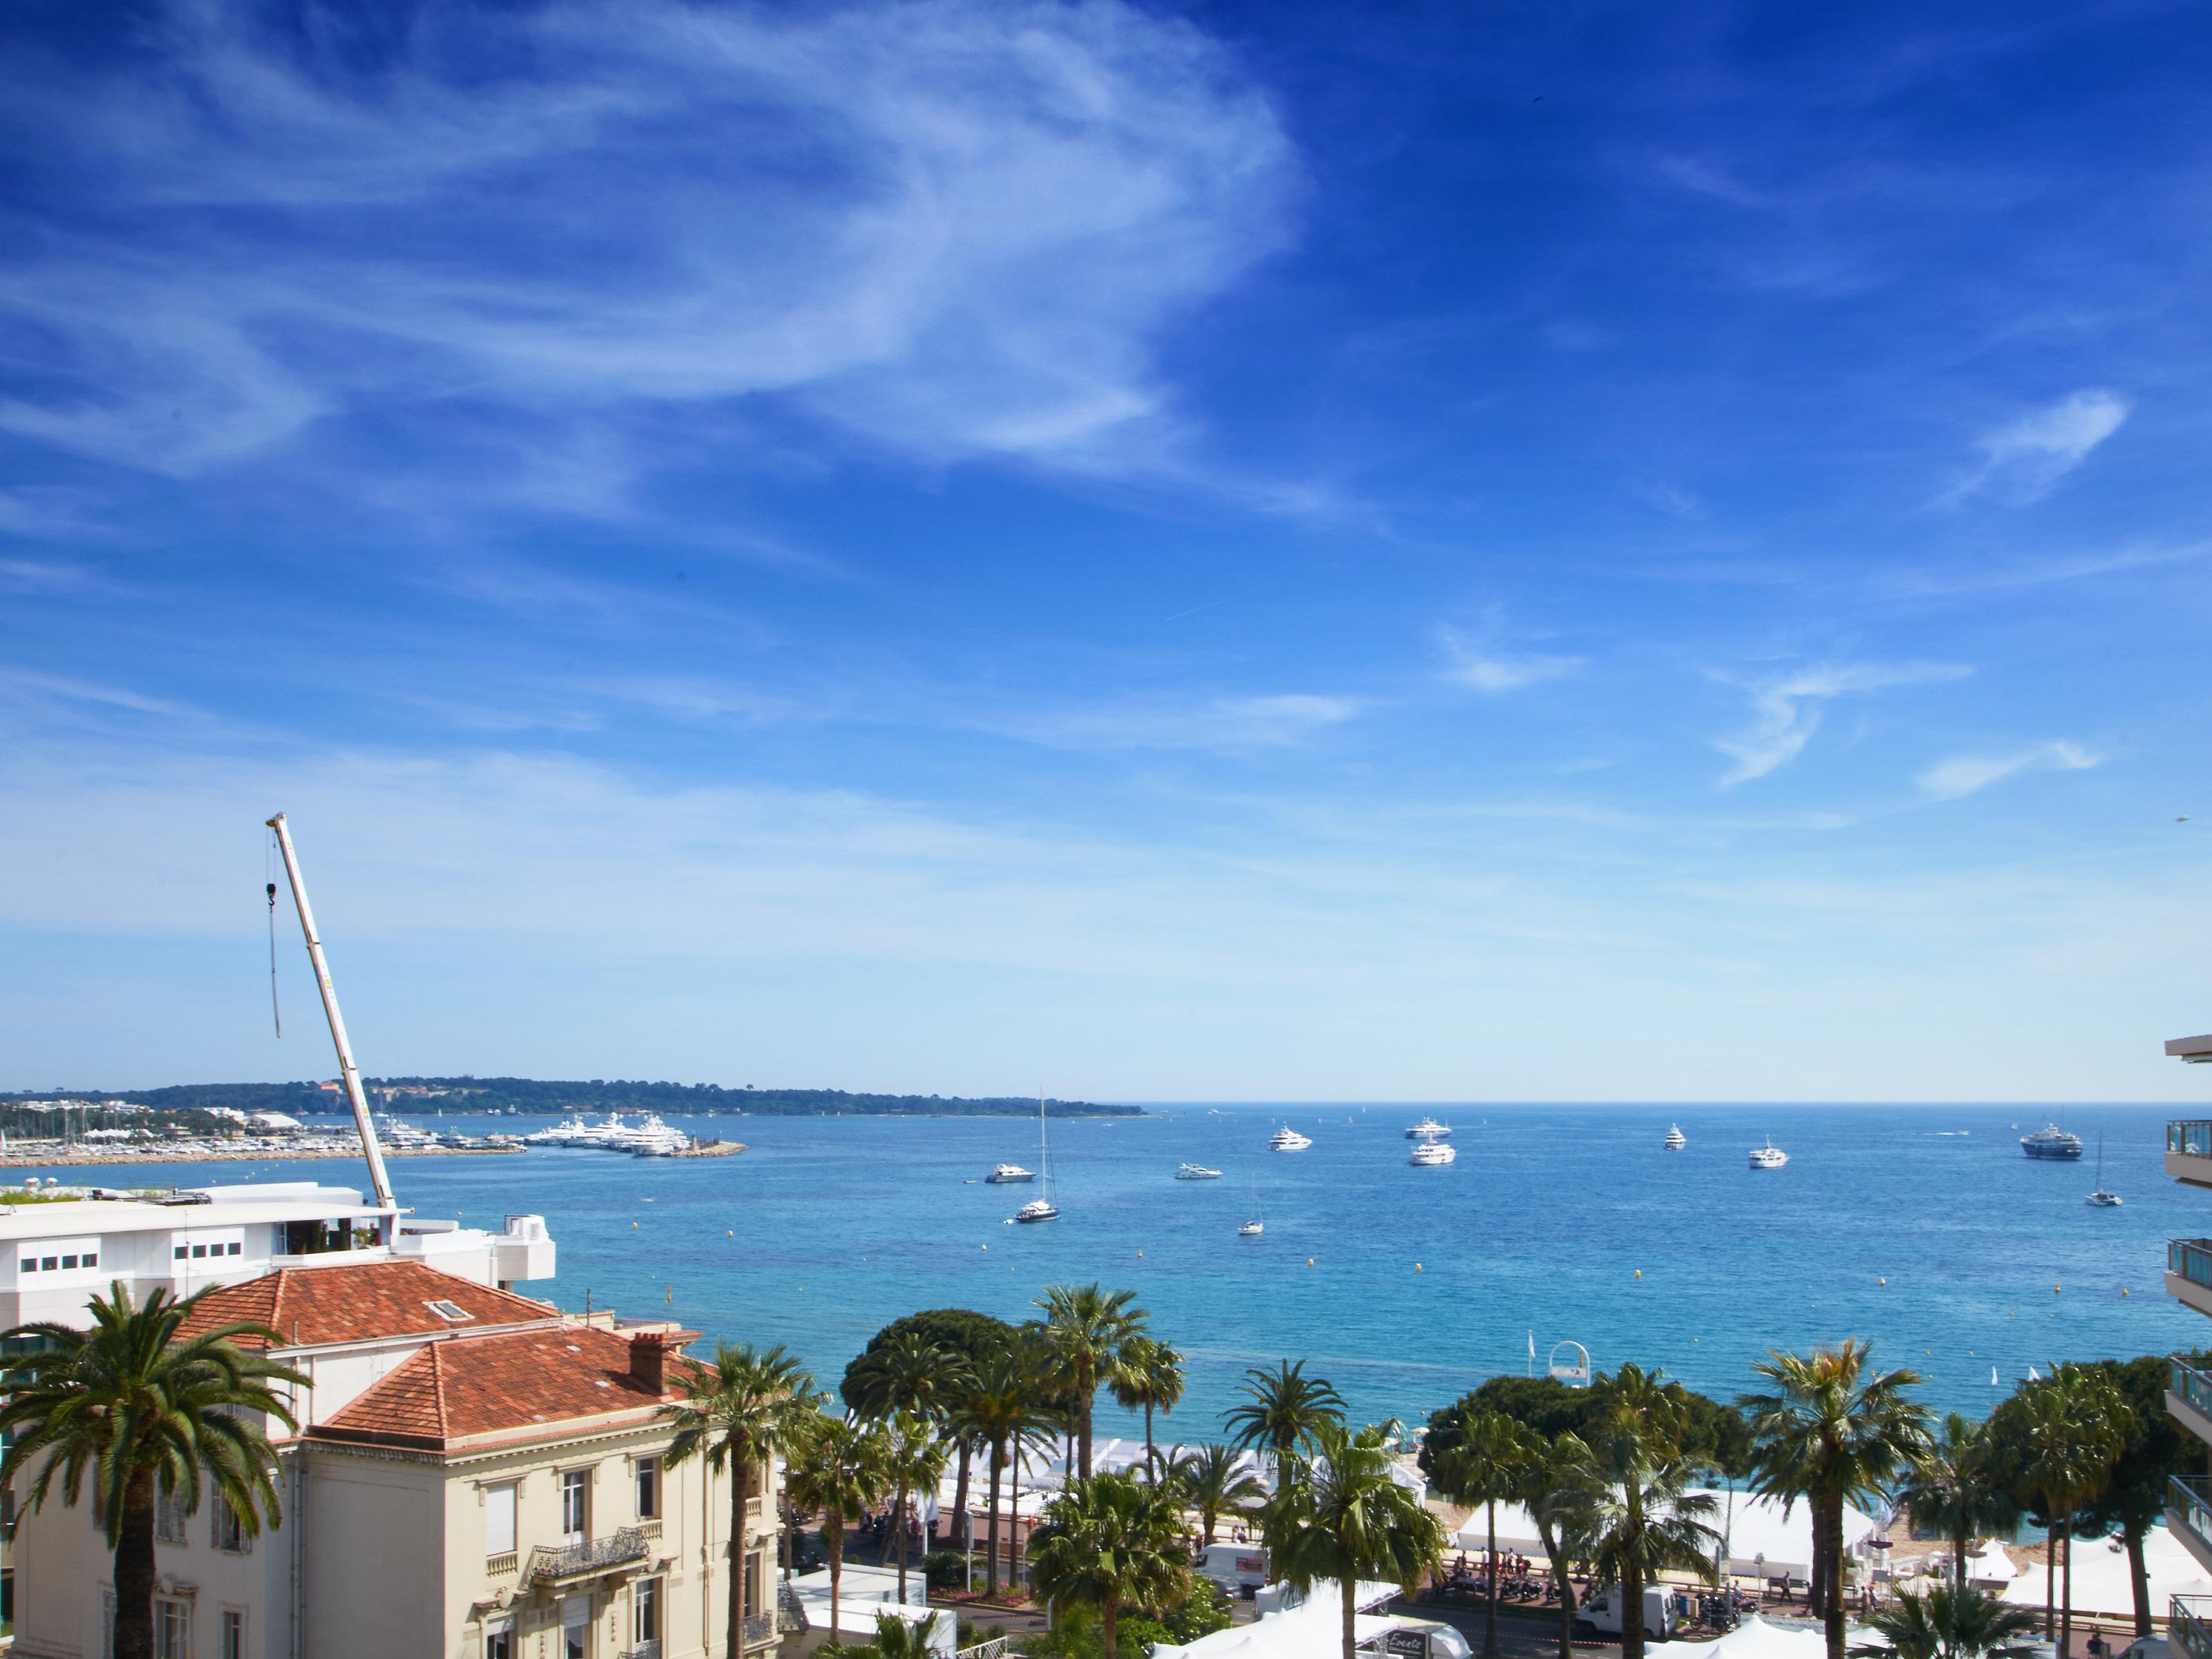 公寓 为 销售 在 La Croisette - 4 bedroomed apartment with amazing sea views Cannes Cannes, 普罗旺斯阿尔卑斯蓝色海岸 06400 法国